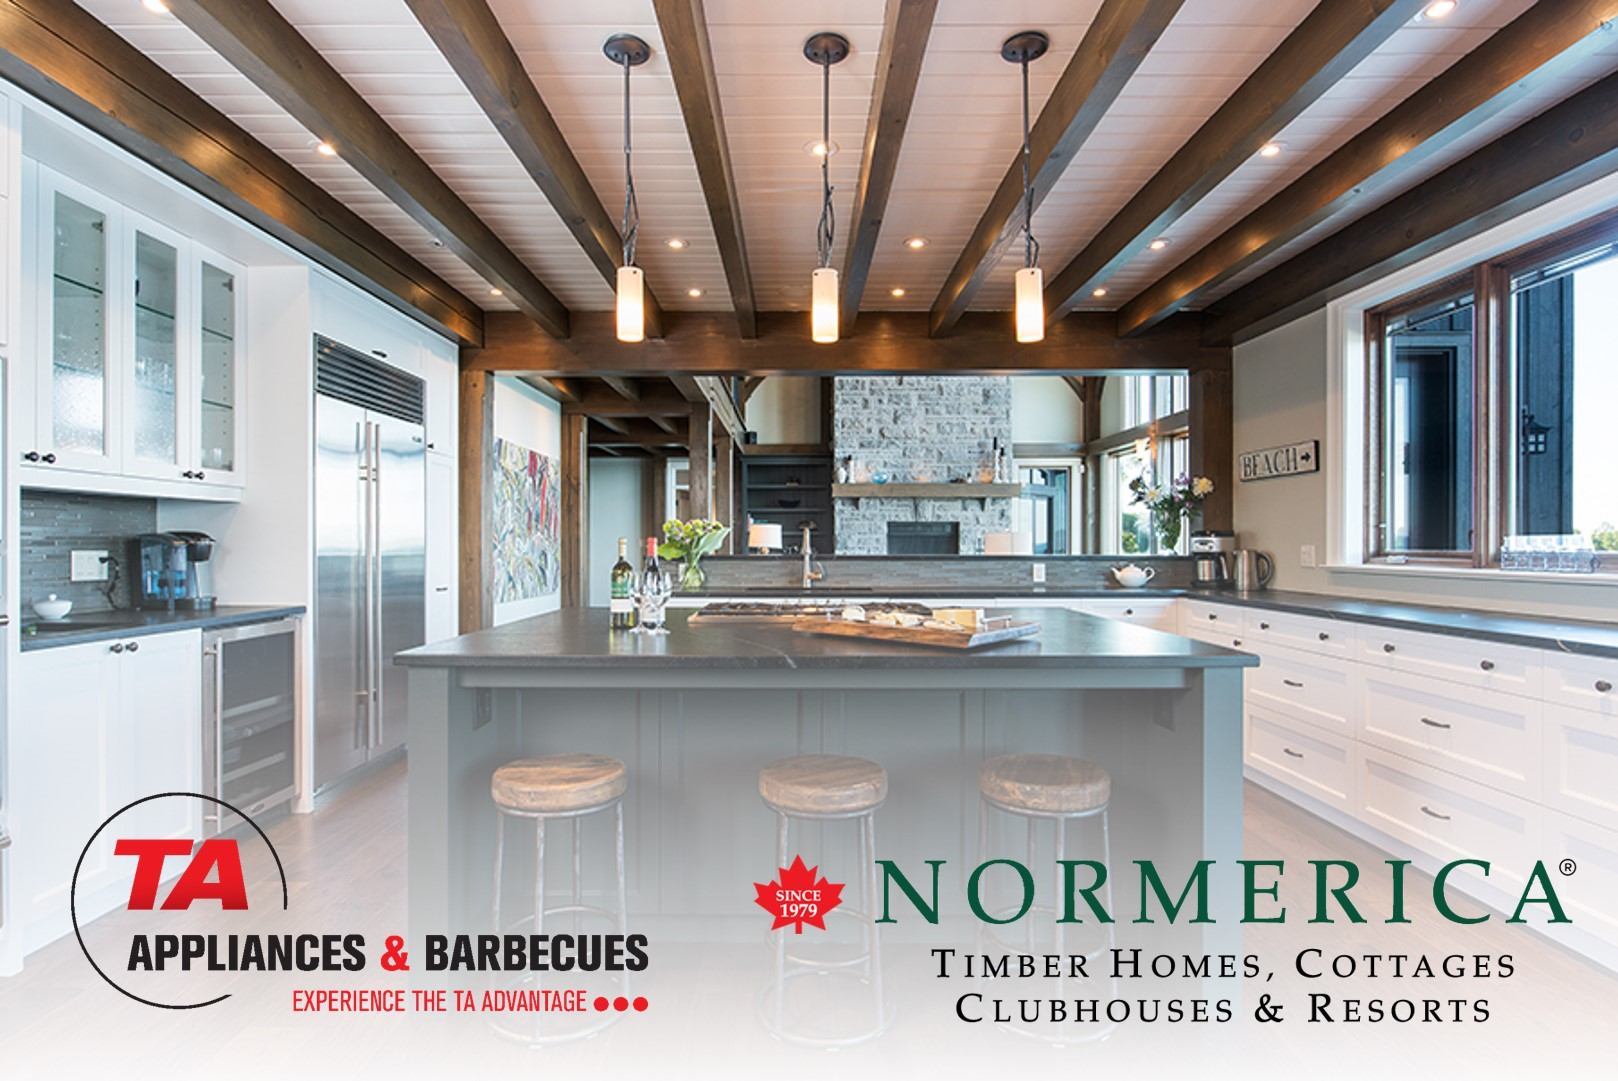 For a limited time: Save on your home appliances with the purchase of a Normerica package